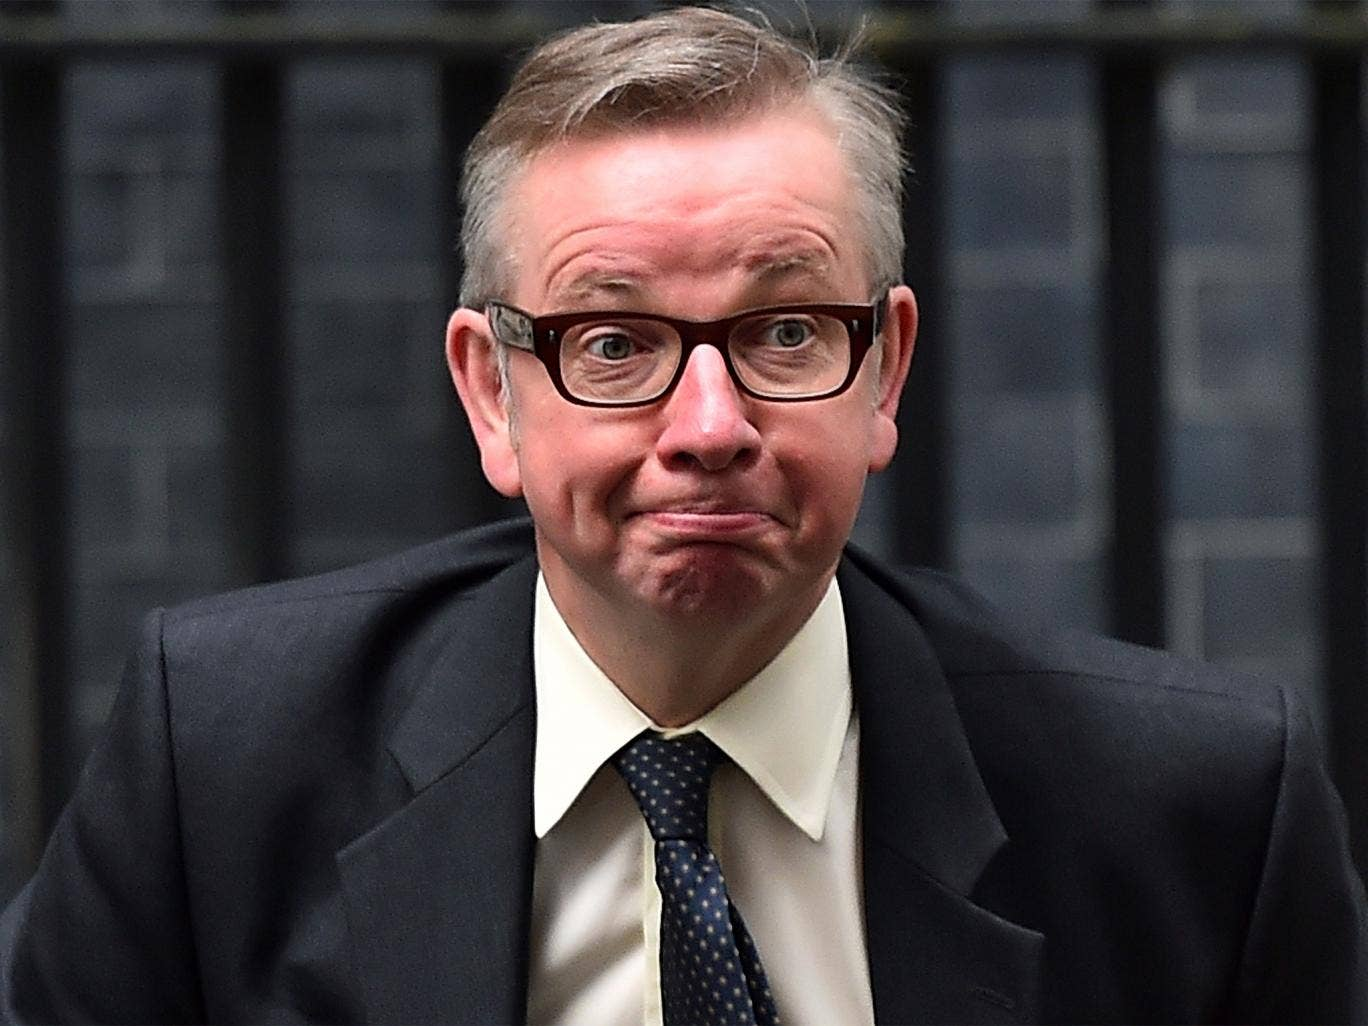 Michael Gove was switched from Education Secretary to the Government's Chief Whip after polling showed he was deeply unpopular with teachers